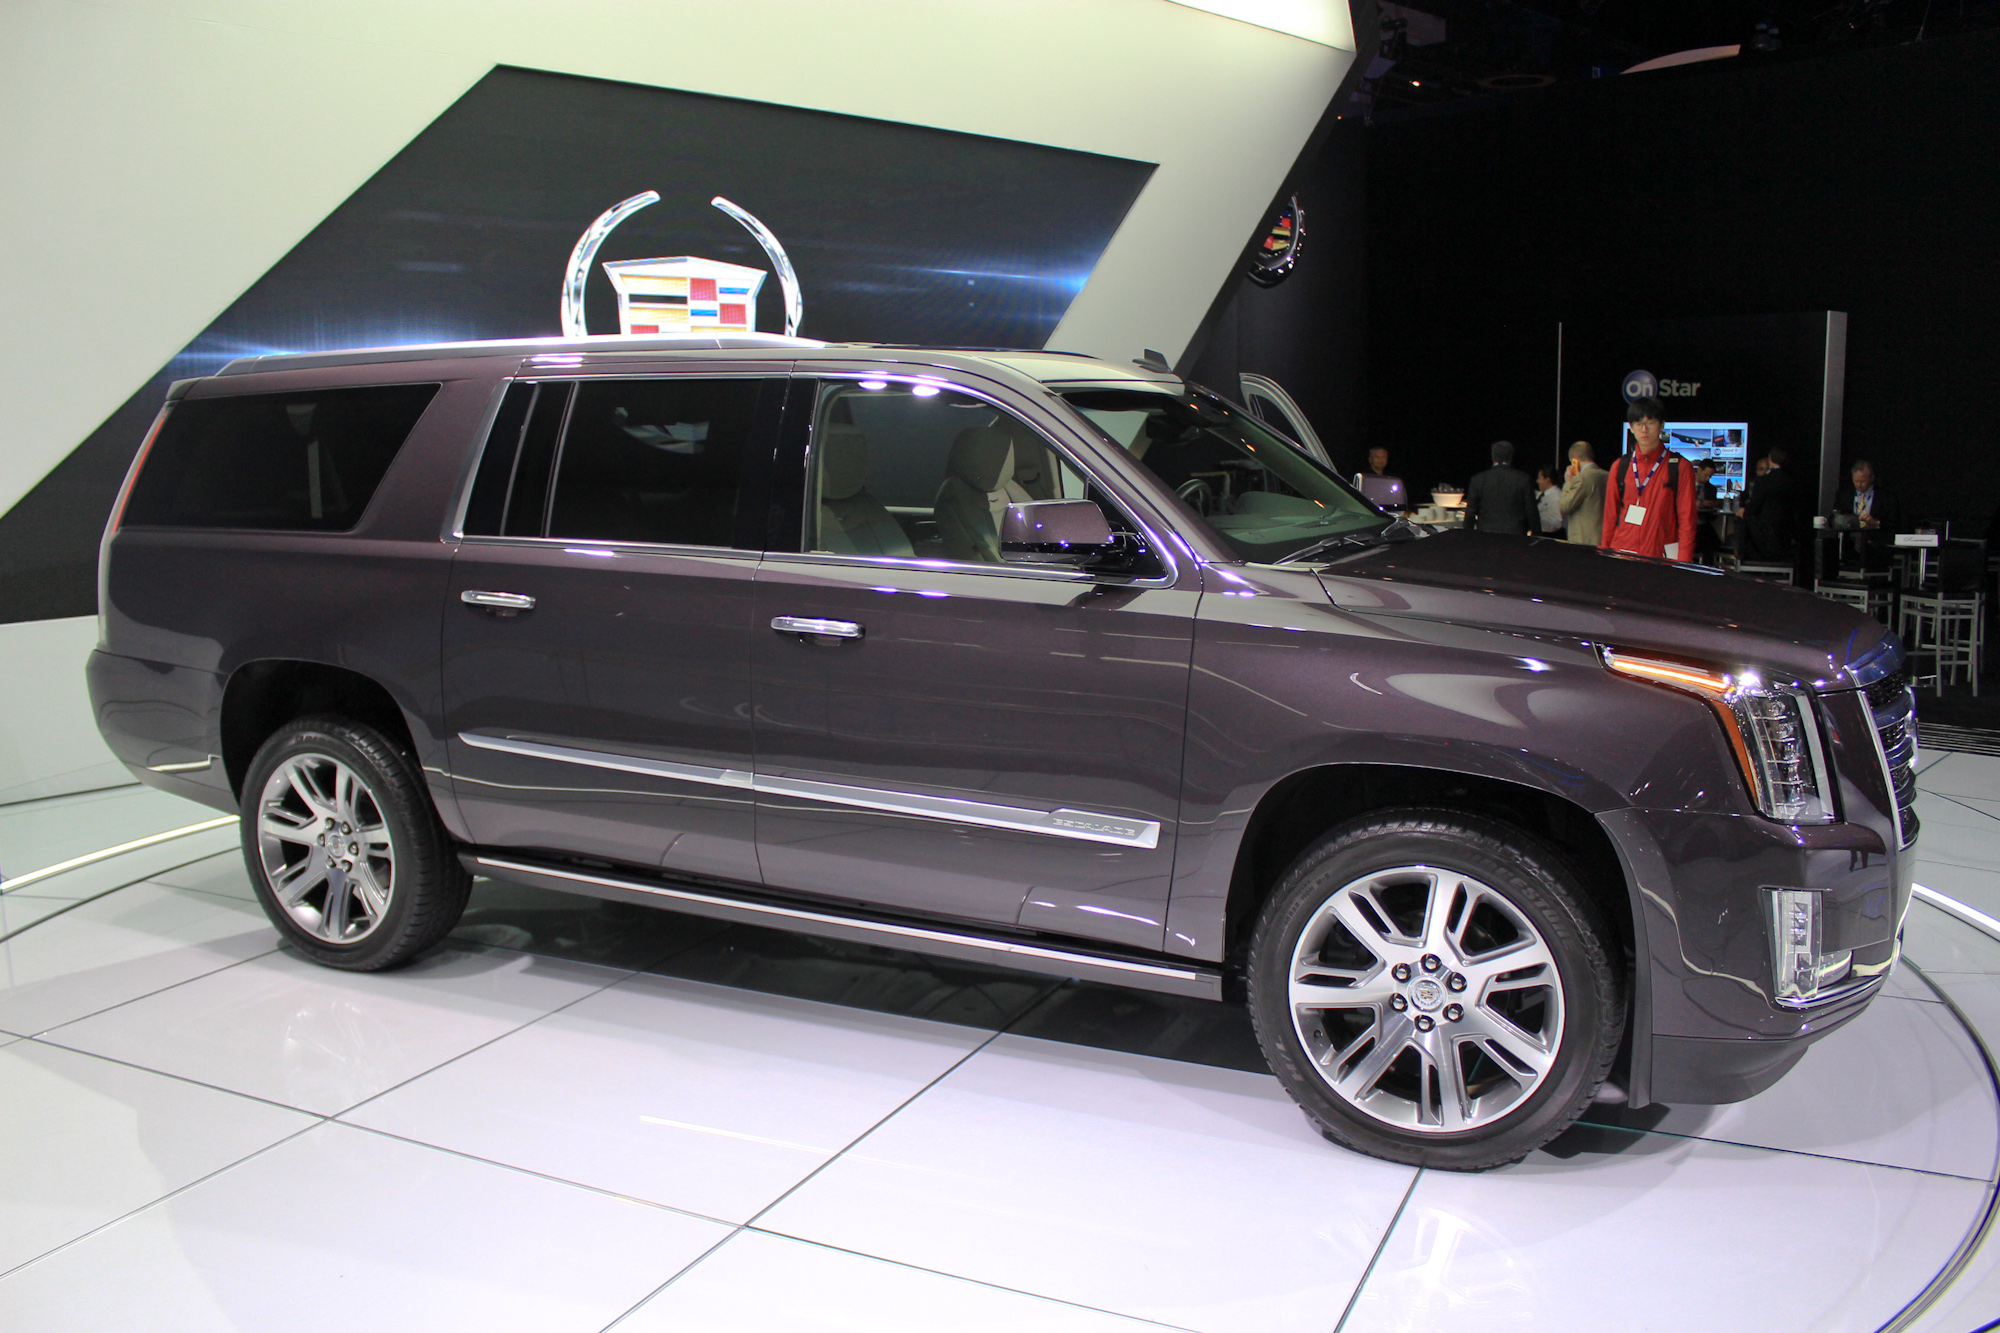 cadillac 2015 cadillac escalade esv 2015 cadillac escalade esv image 8. Cars Review. Best American Auto & Cars Review